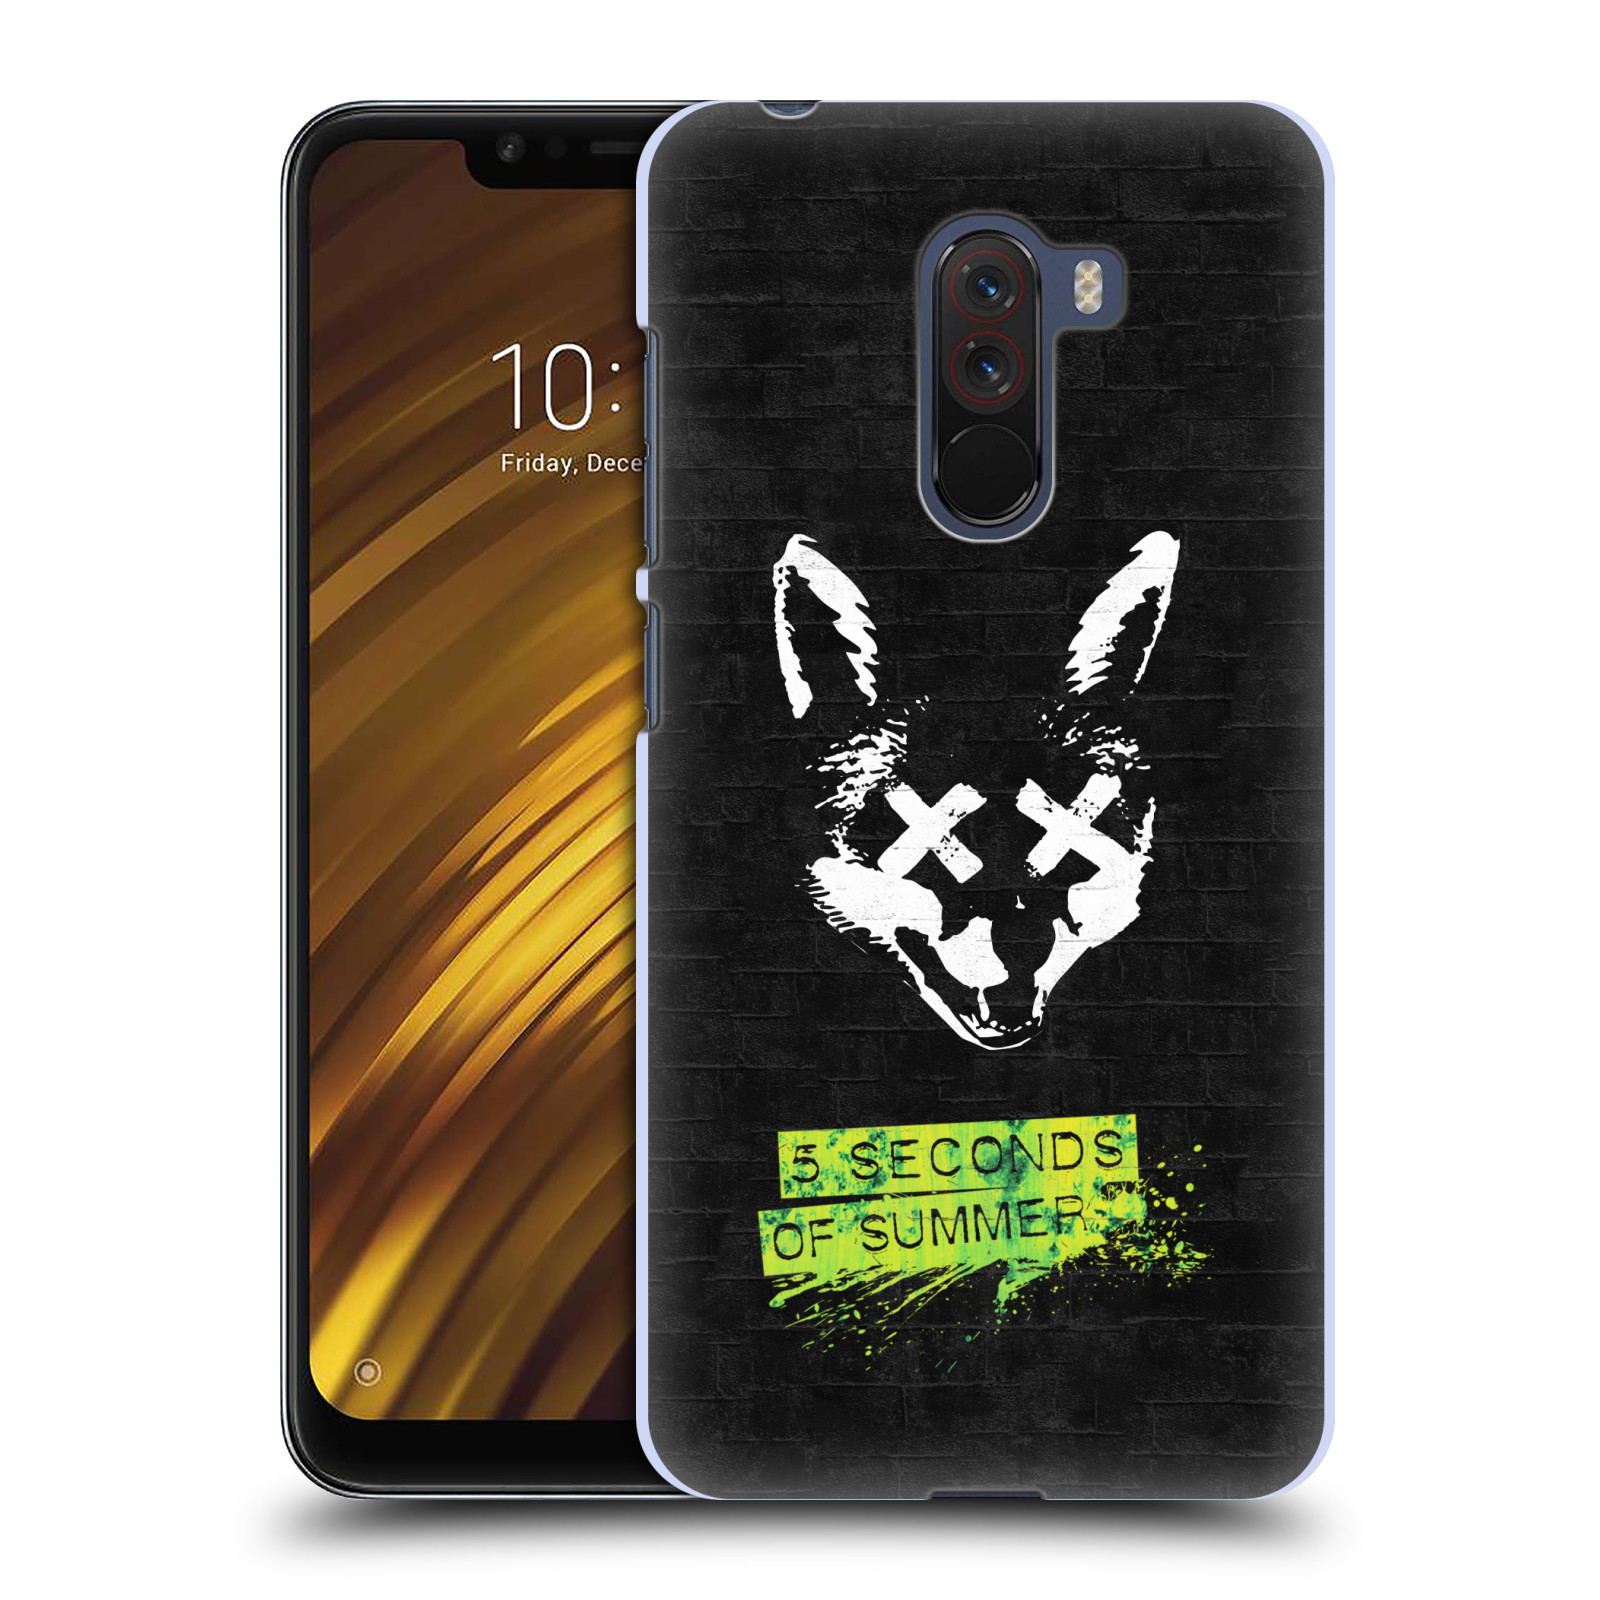 Plastové pouzdro na mobil Xiaomi Pocophone F1 - Head Case - 5 Seconds of Summer - Fox